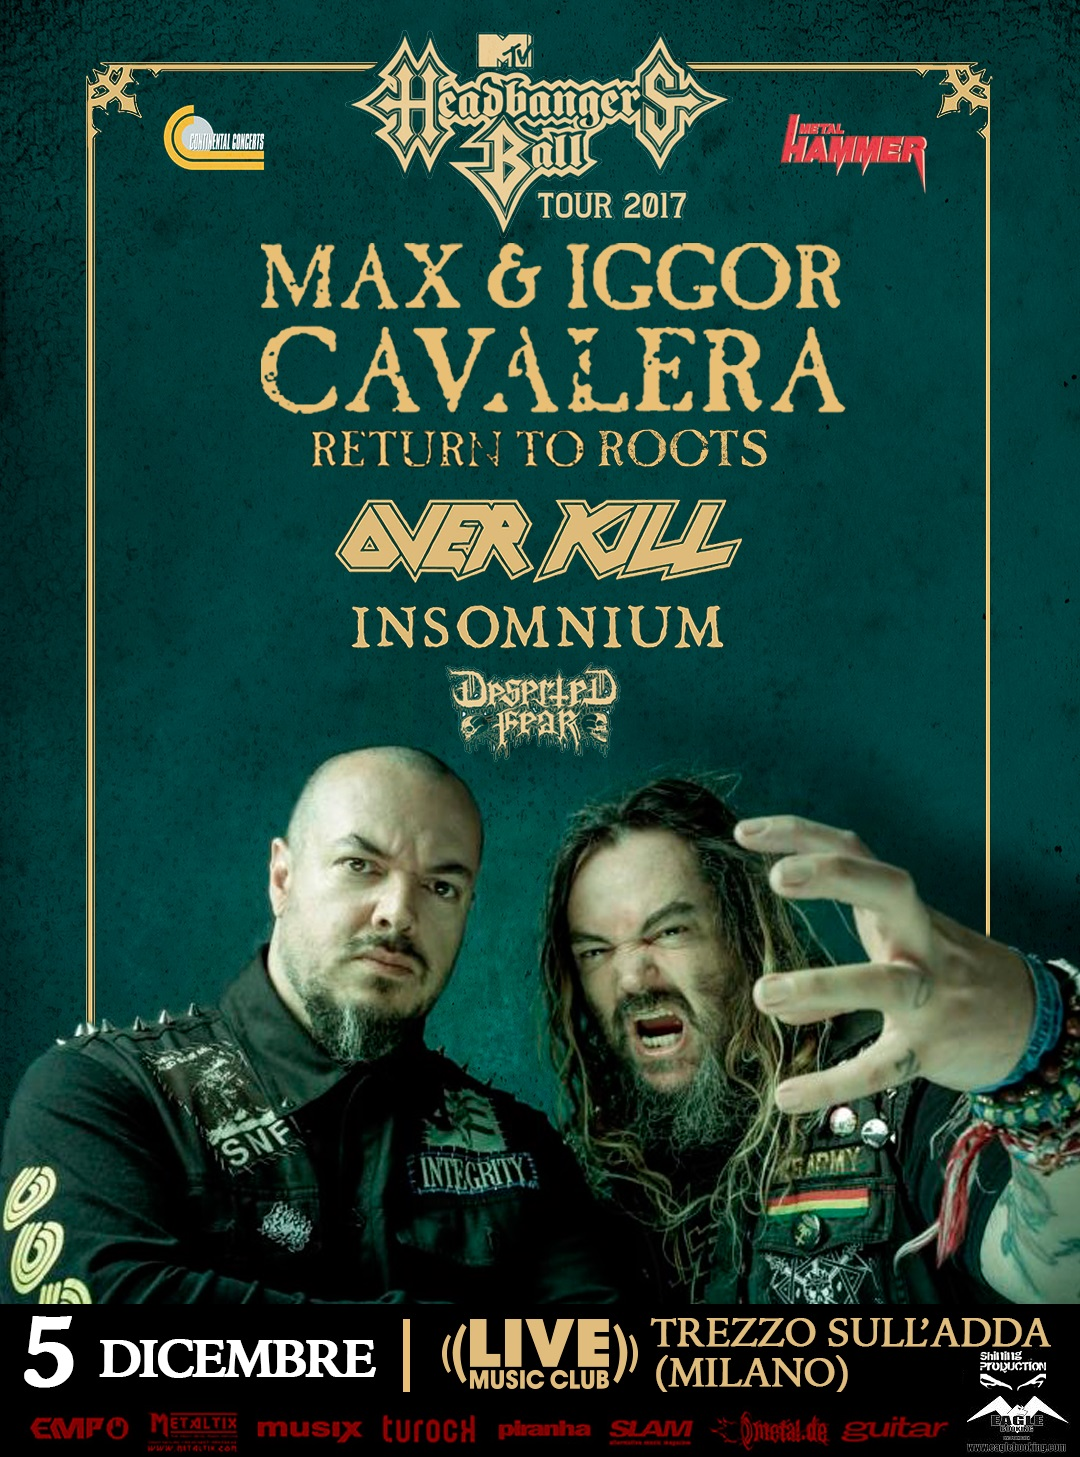 Max & Igor Cavalera - Overkill - Insomnium - Deserted Fear - Live Music Club - Return To Roots 2018 - Promo